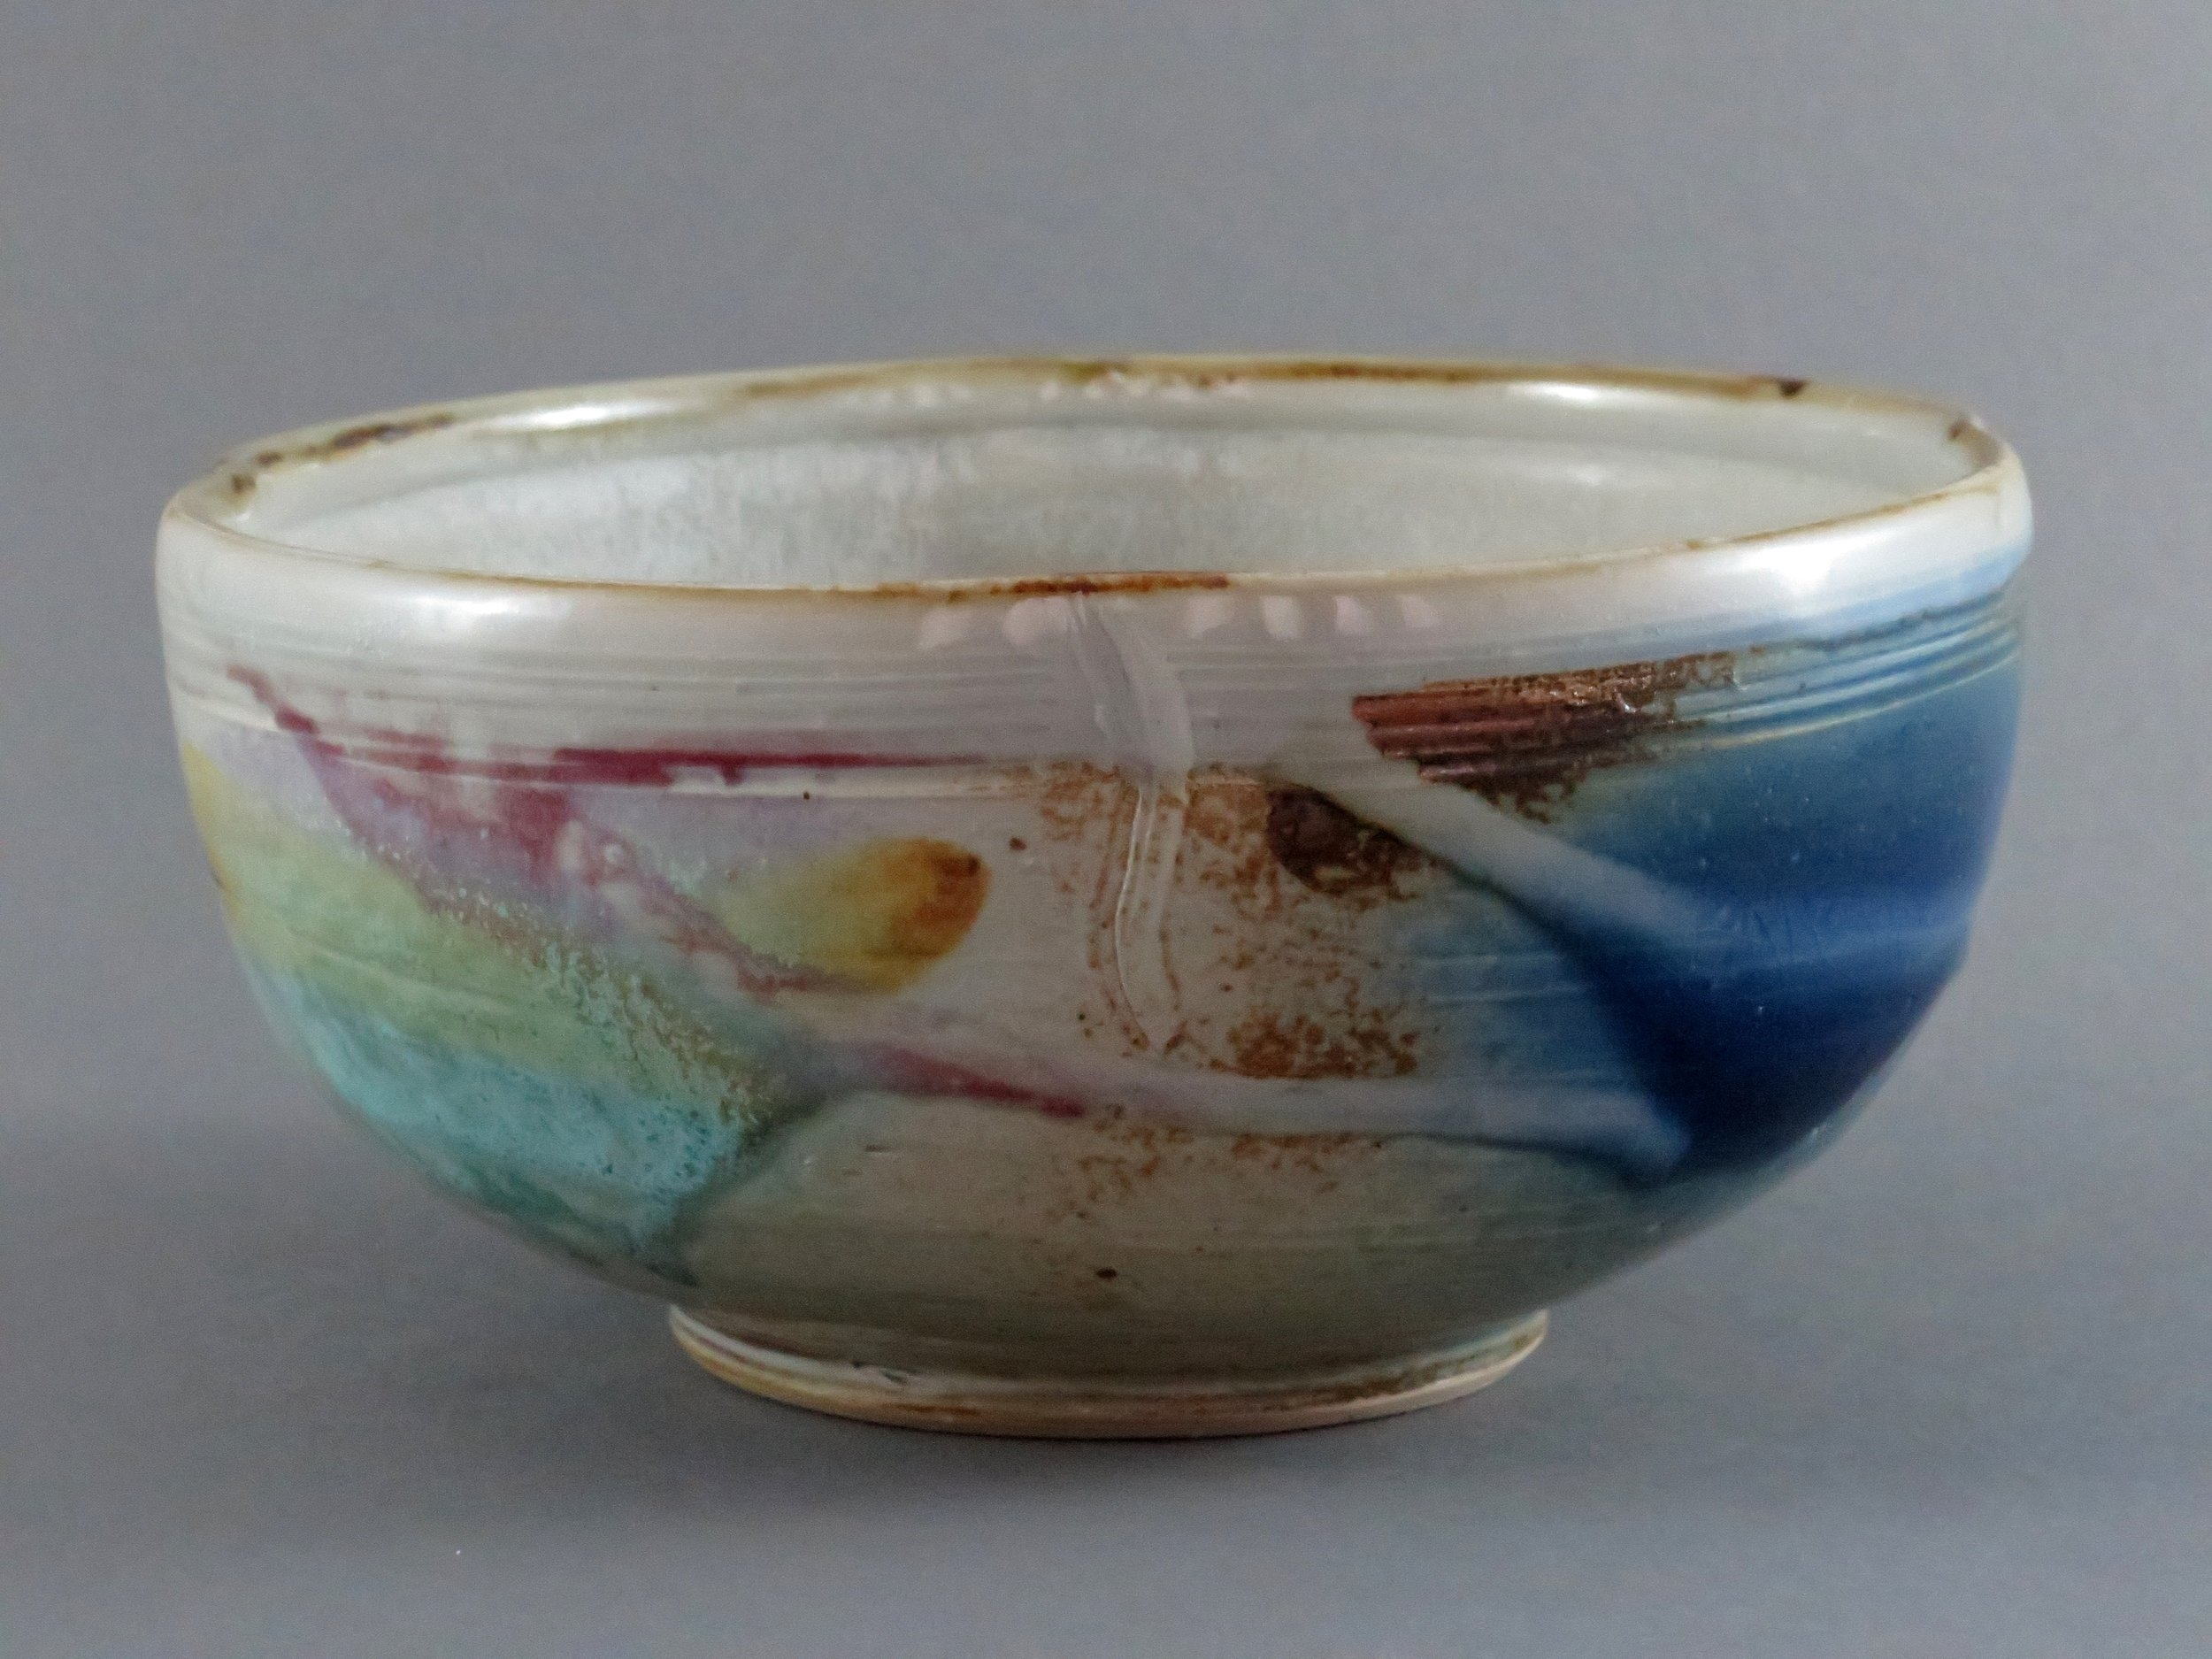 Serving bowl with blue & turquoise